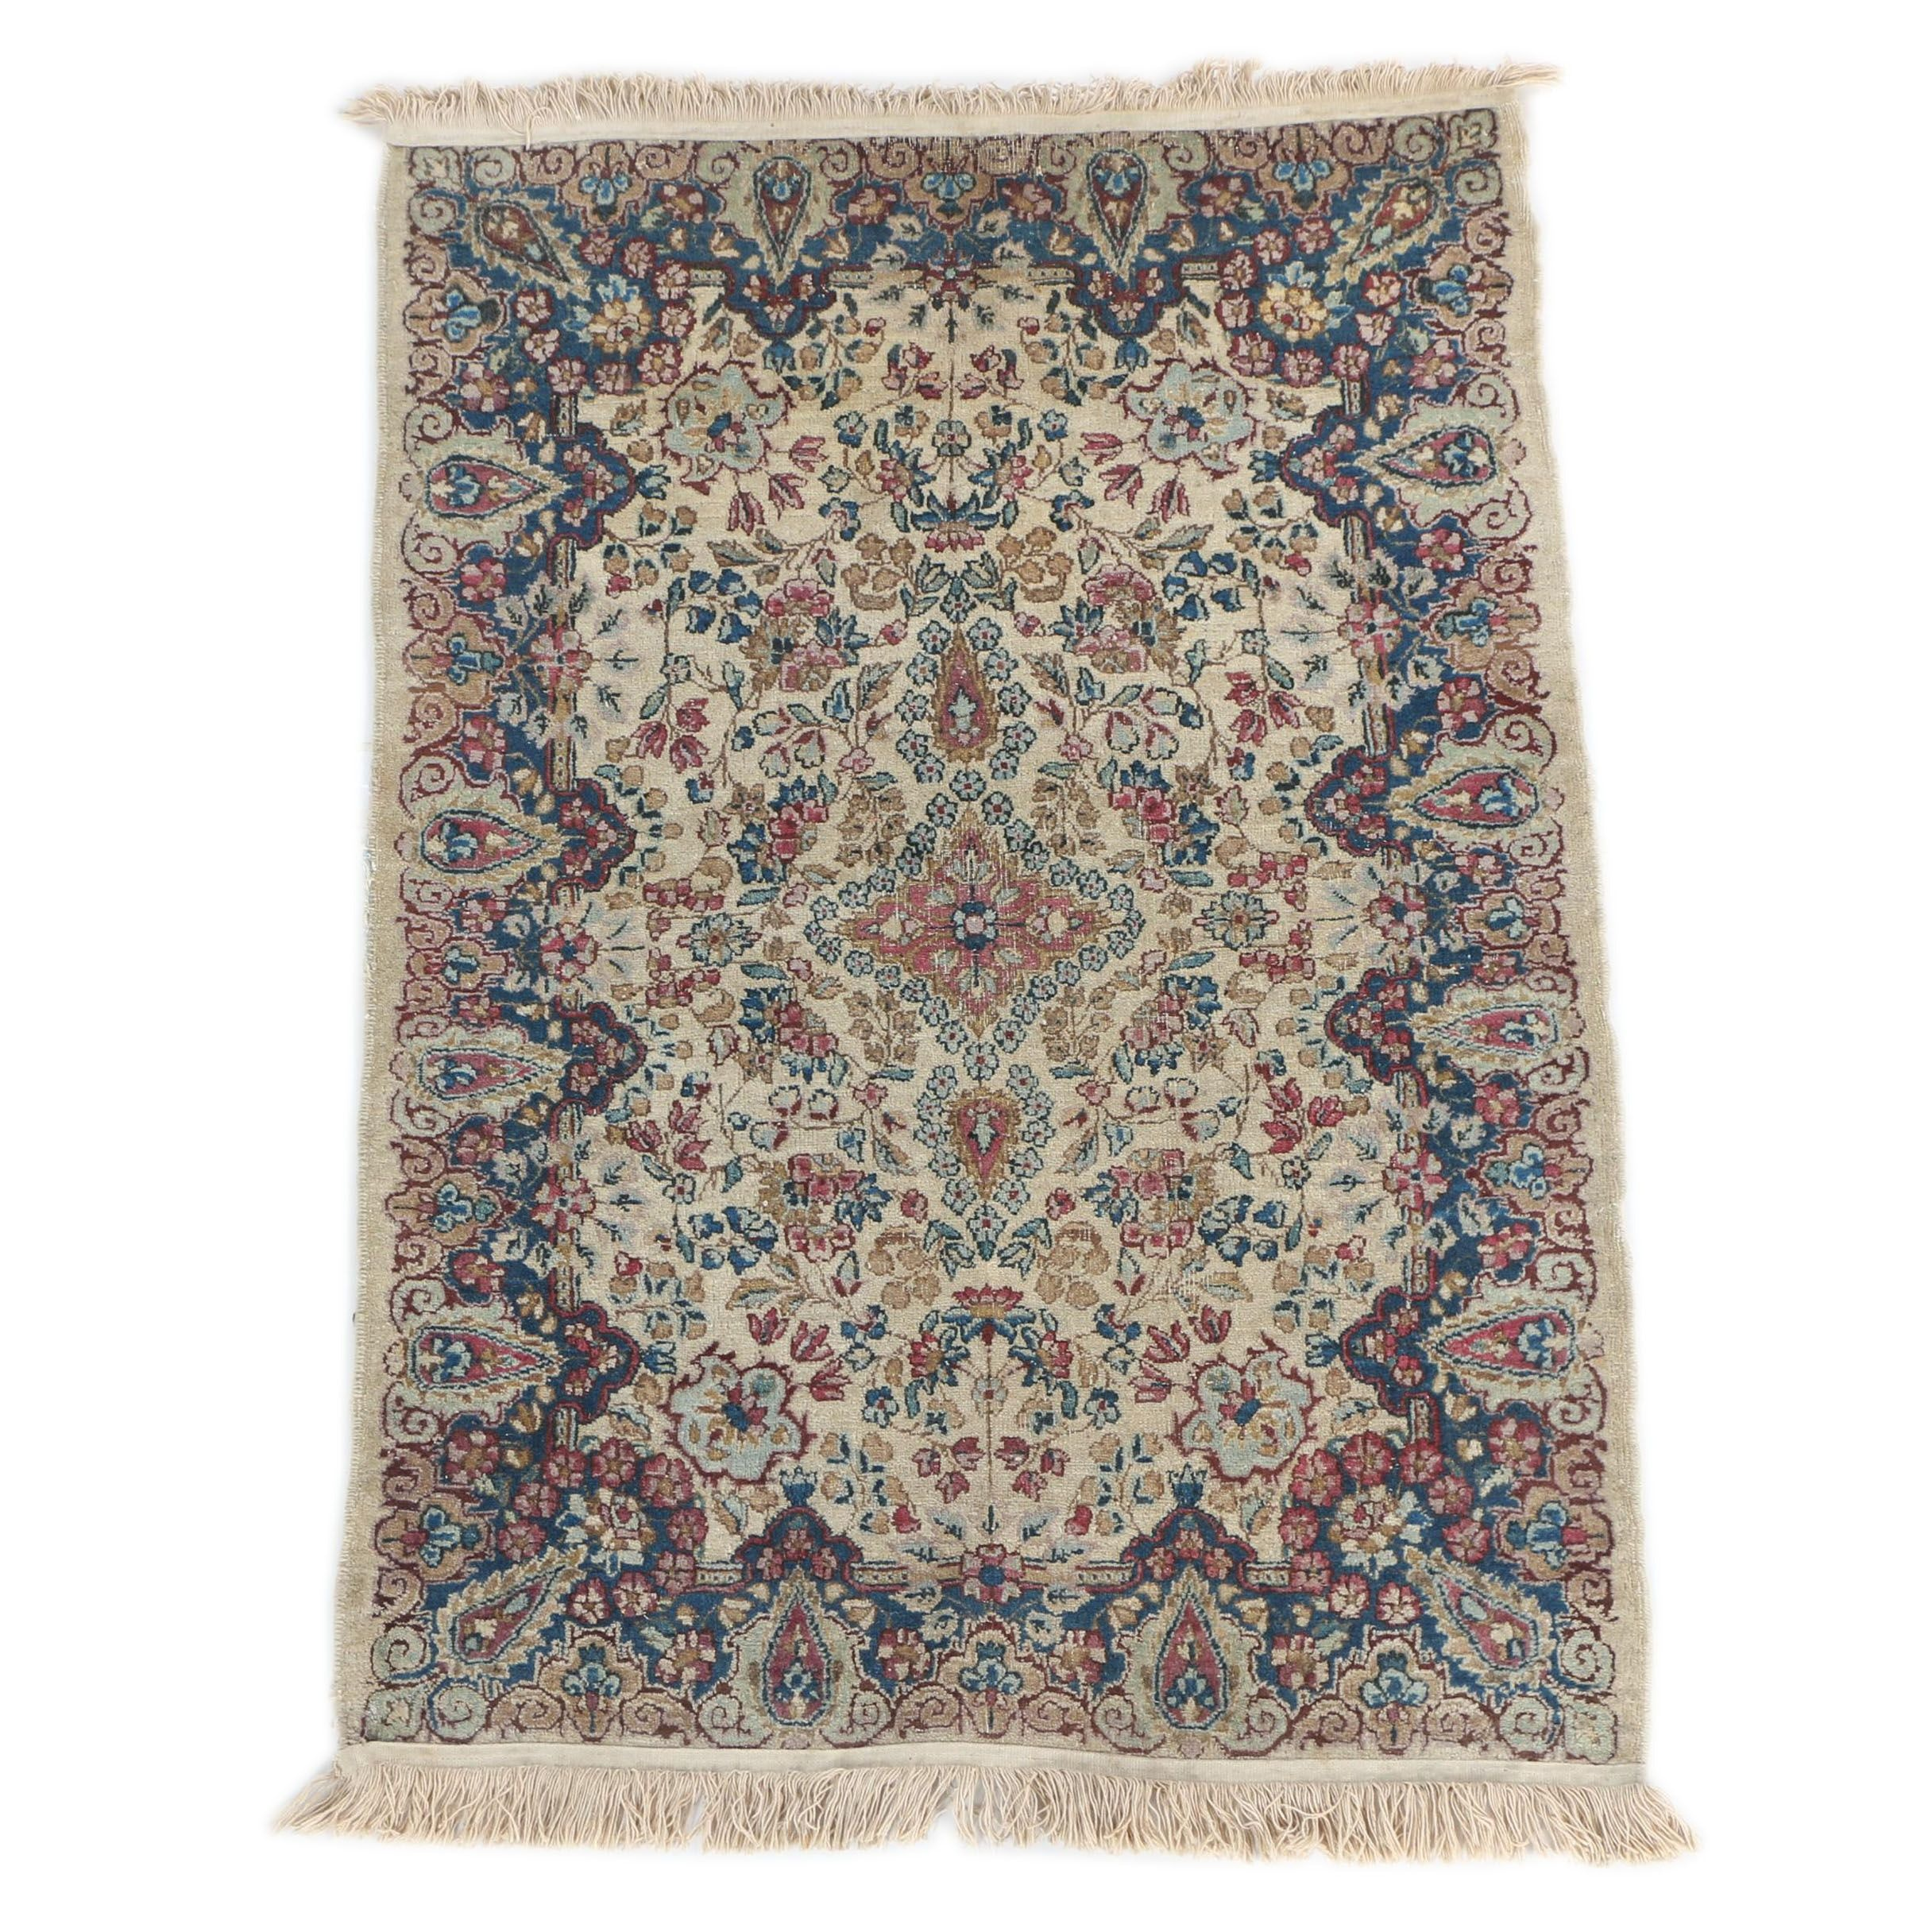 Vintage to Semi-Antique Hand-Knotted Persian Kerman Accent Rug